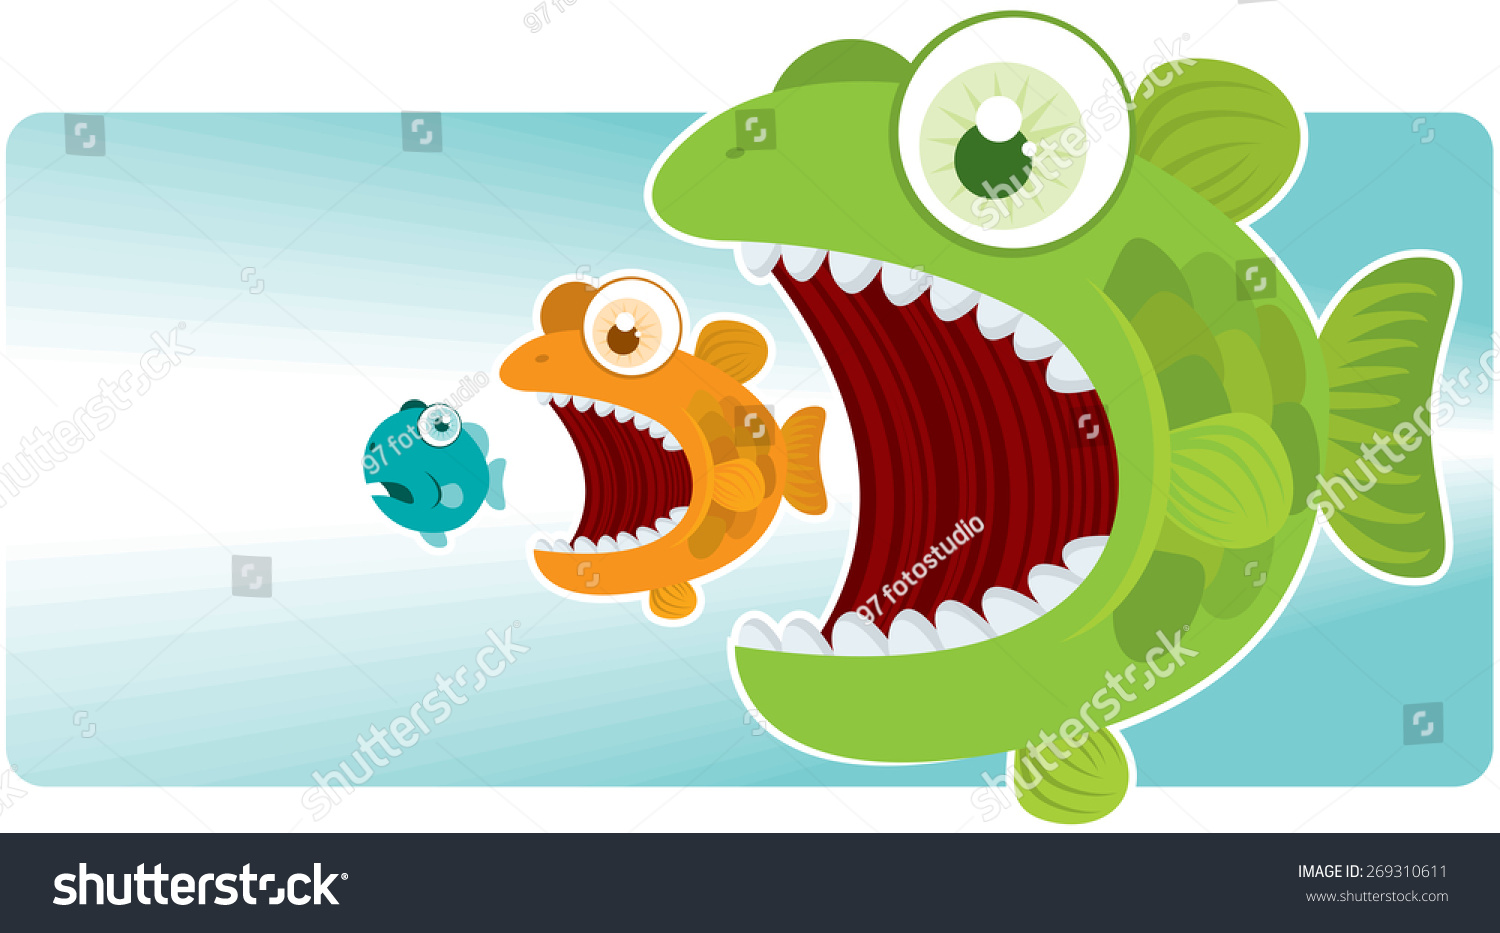 Big Fish Eat Small Fish Stock Vector Illustration